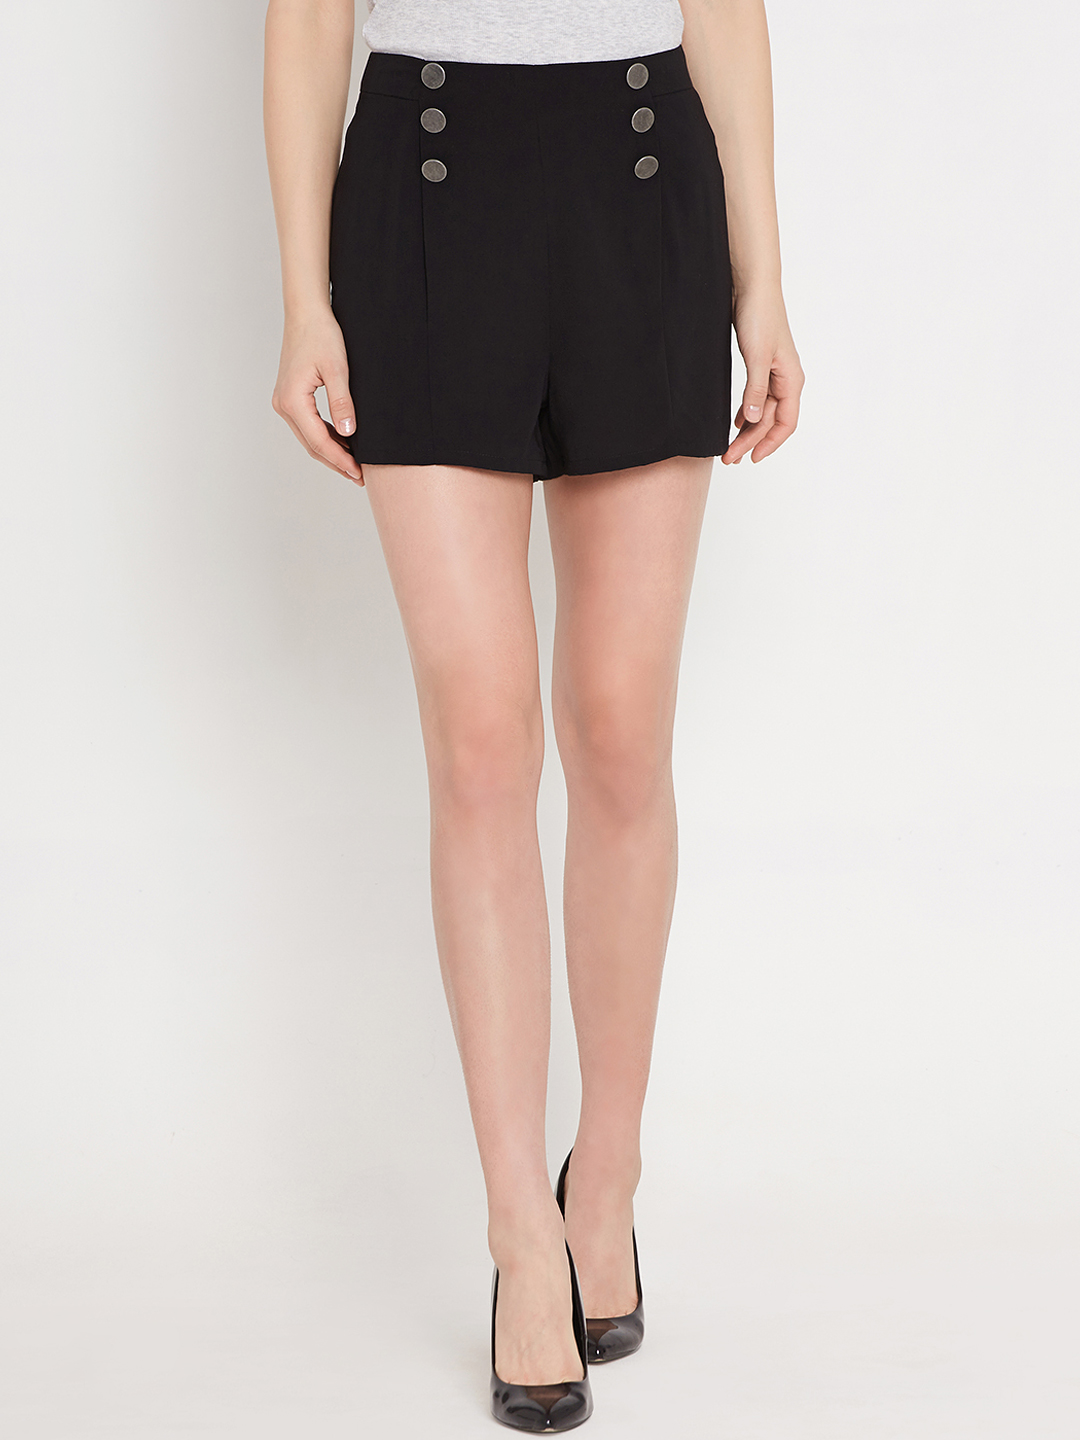 Nun Women Black Shorts Price in India